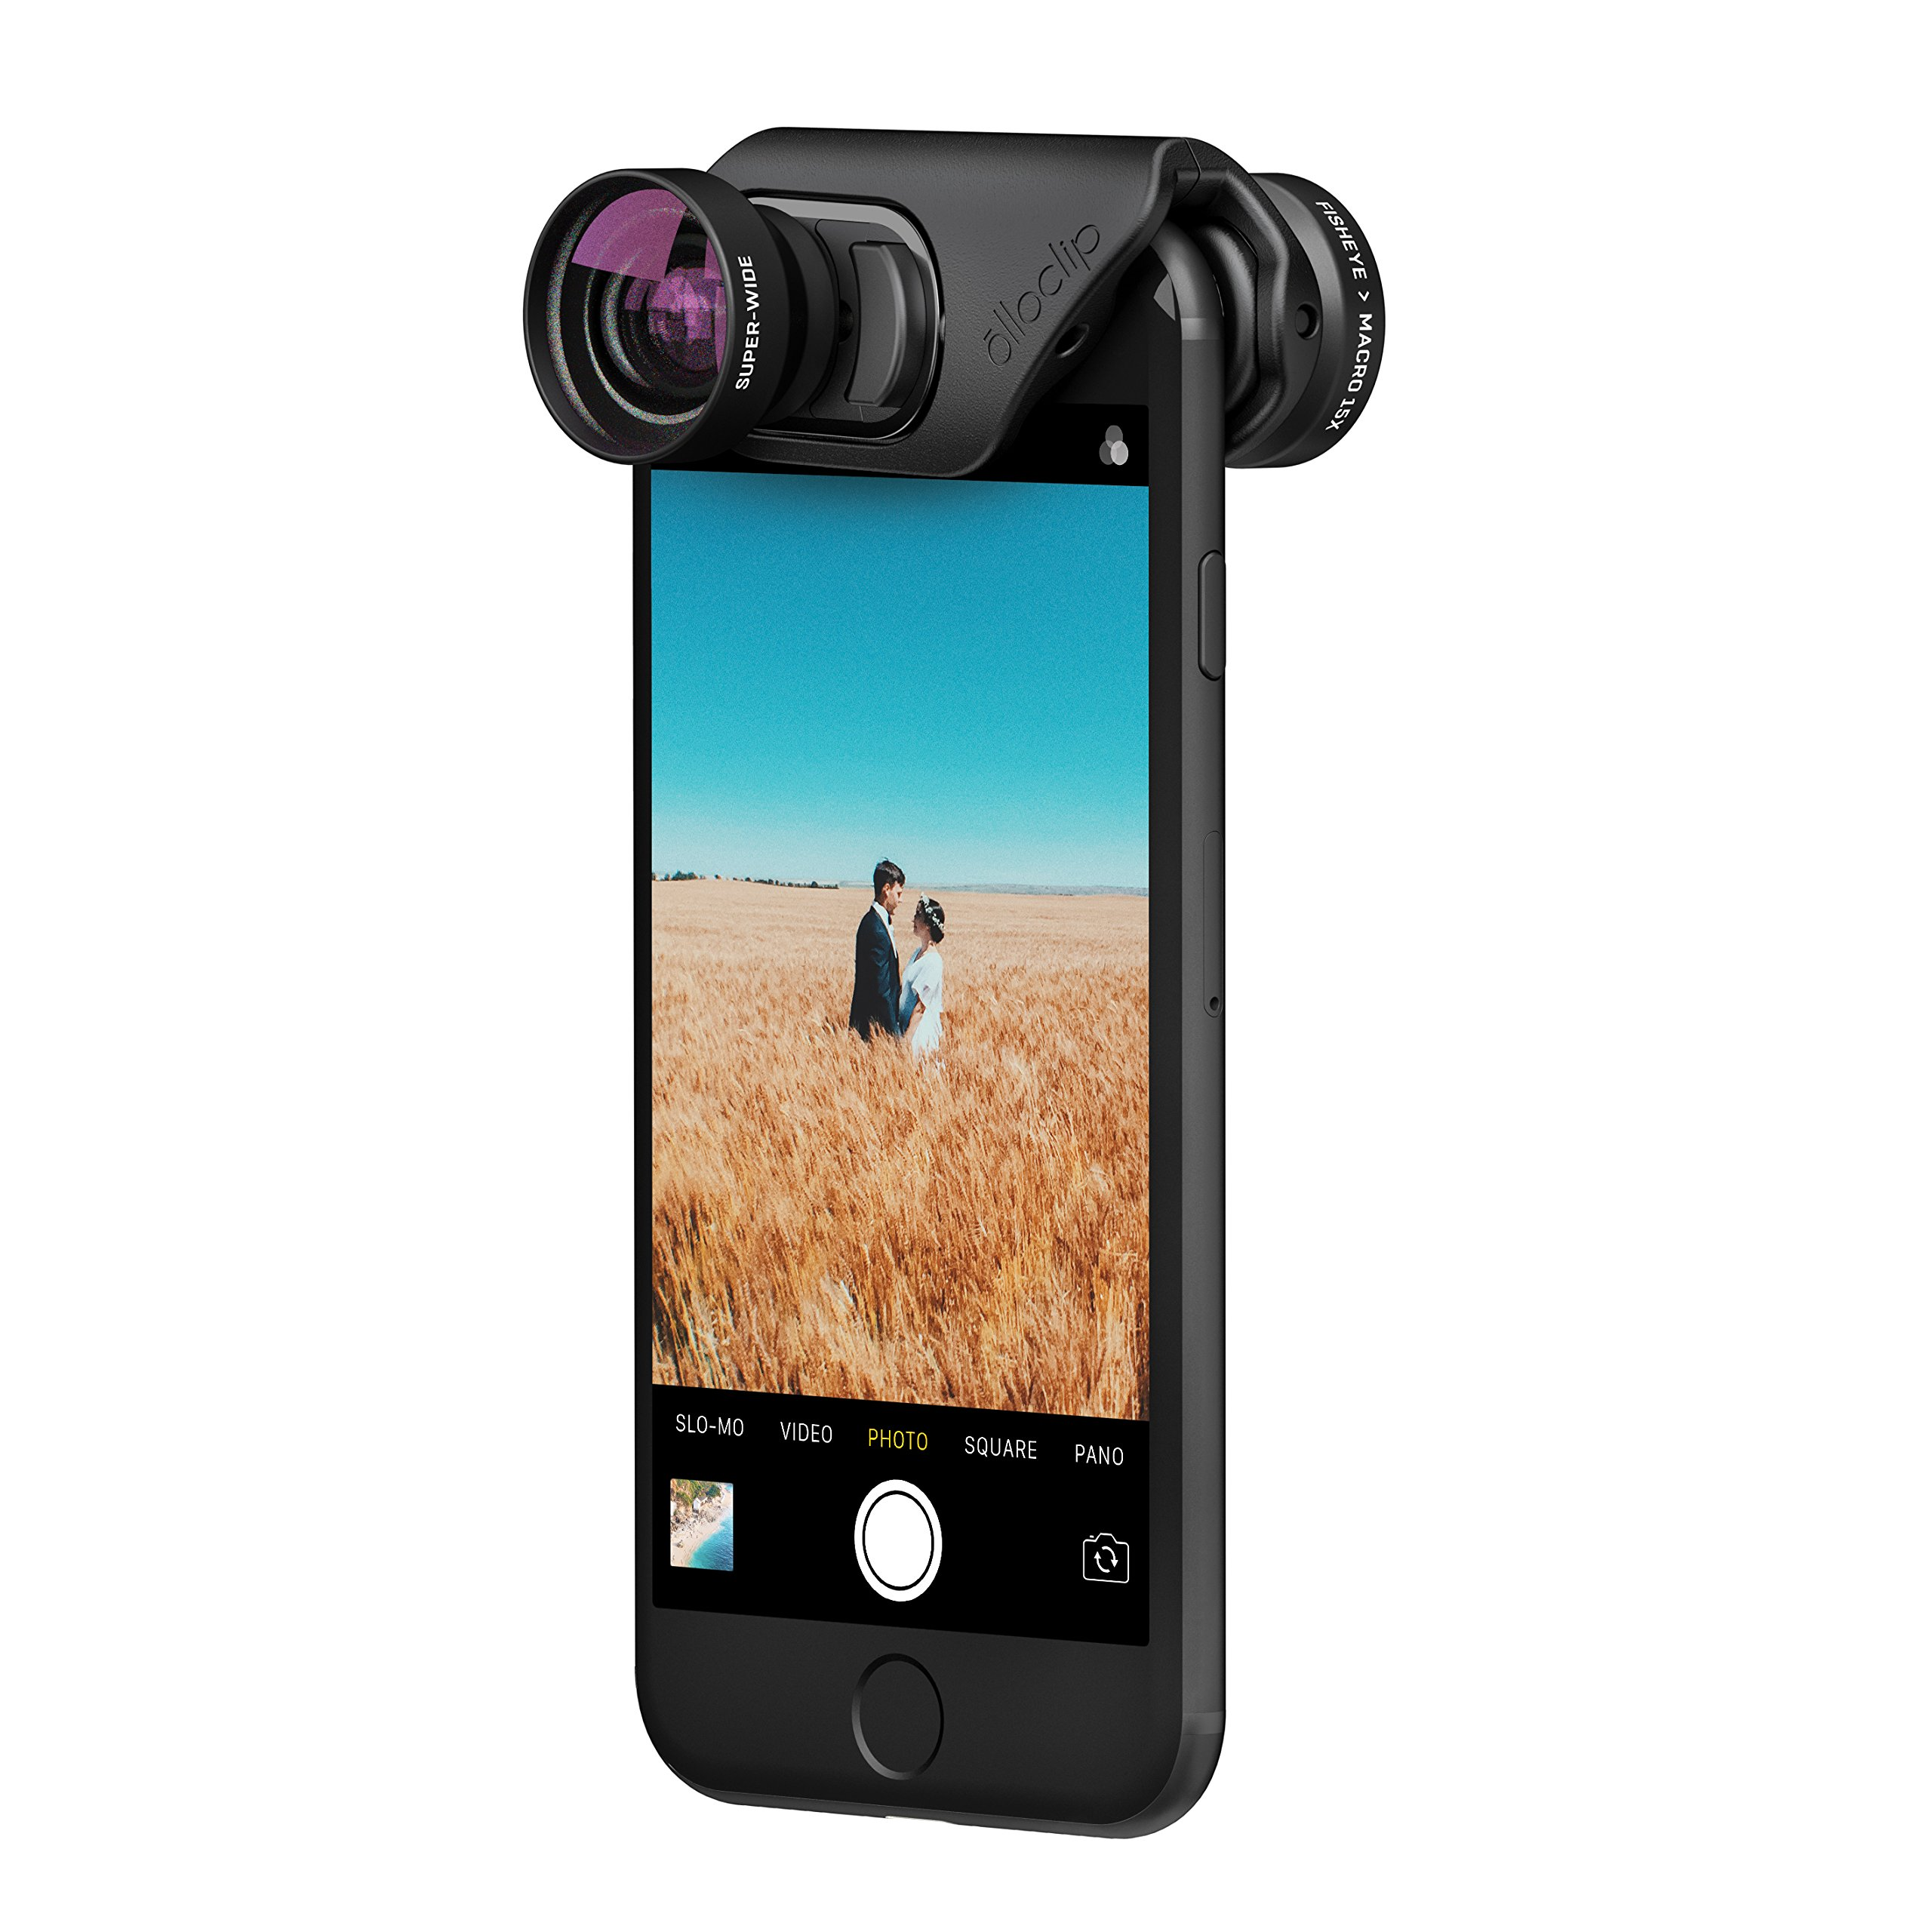 olloclip CORE LENS SET - Compatible with iPhone 8/8 Plus & iPhone 7/7 Plus — FISHEYE, SUPER-WIDE and MACRO 15x Premium Clip On Cell Phone Camera Lens Attachment